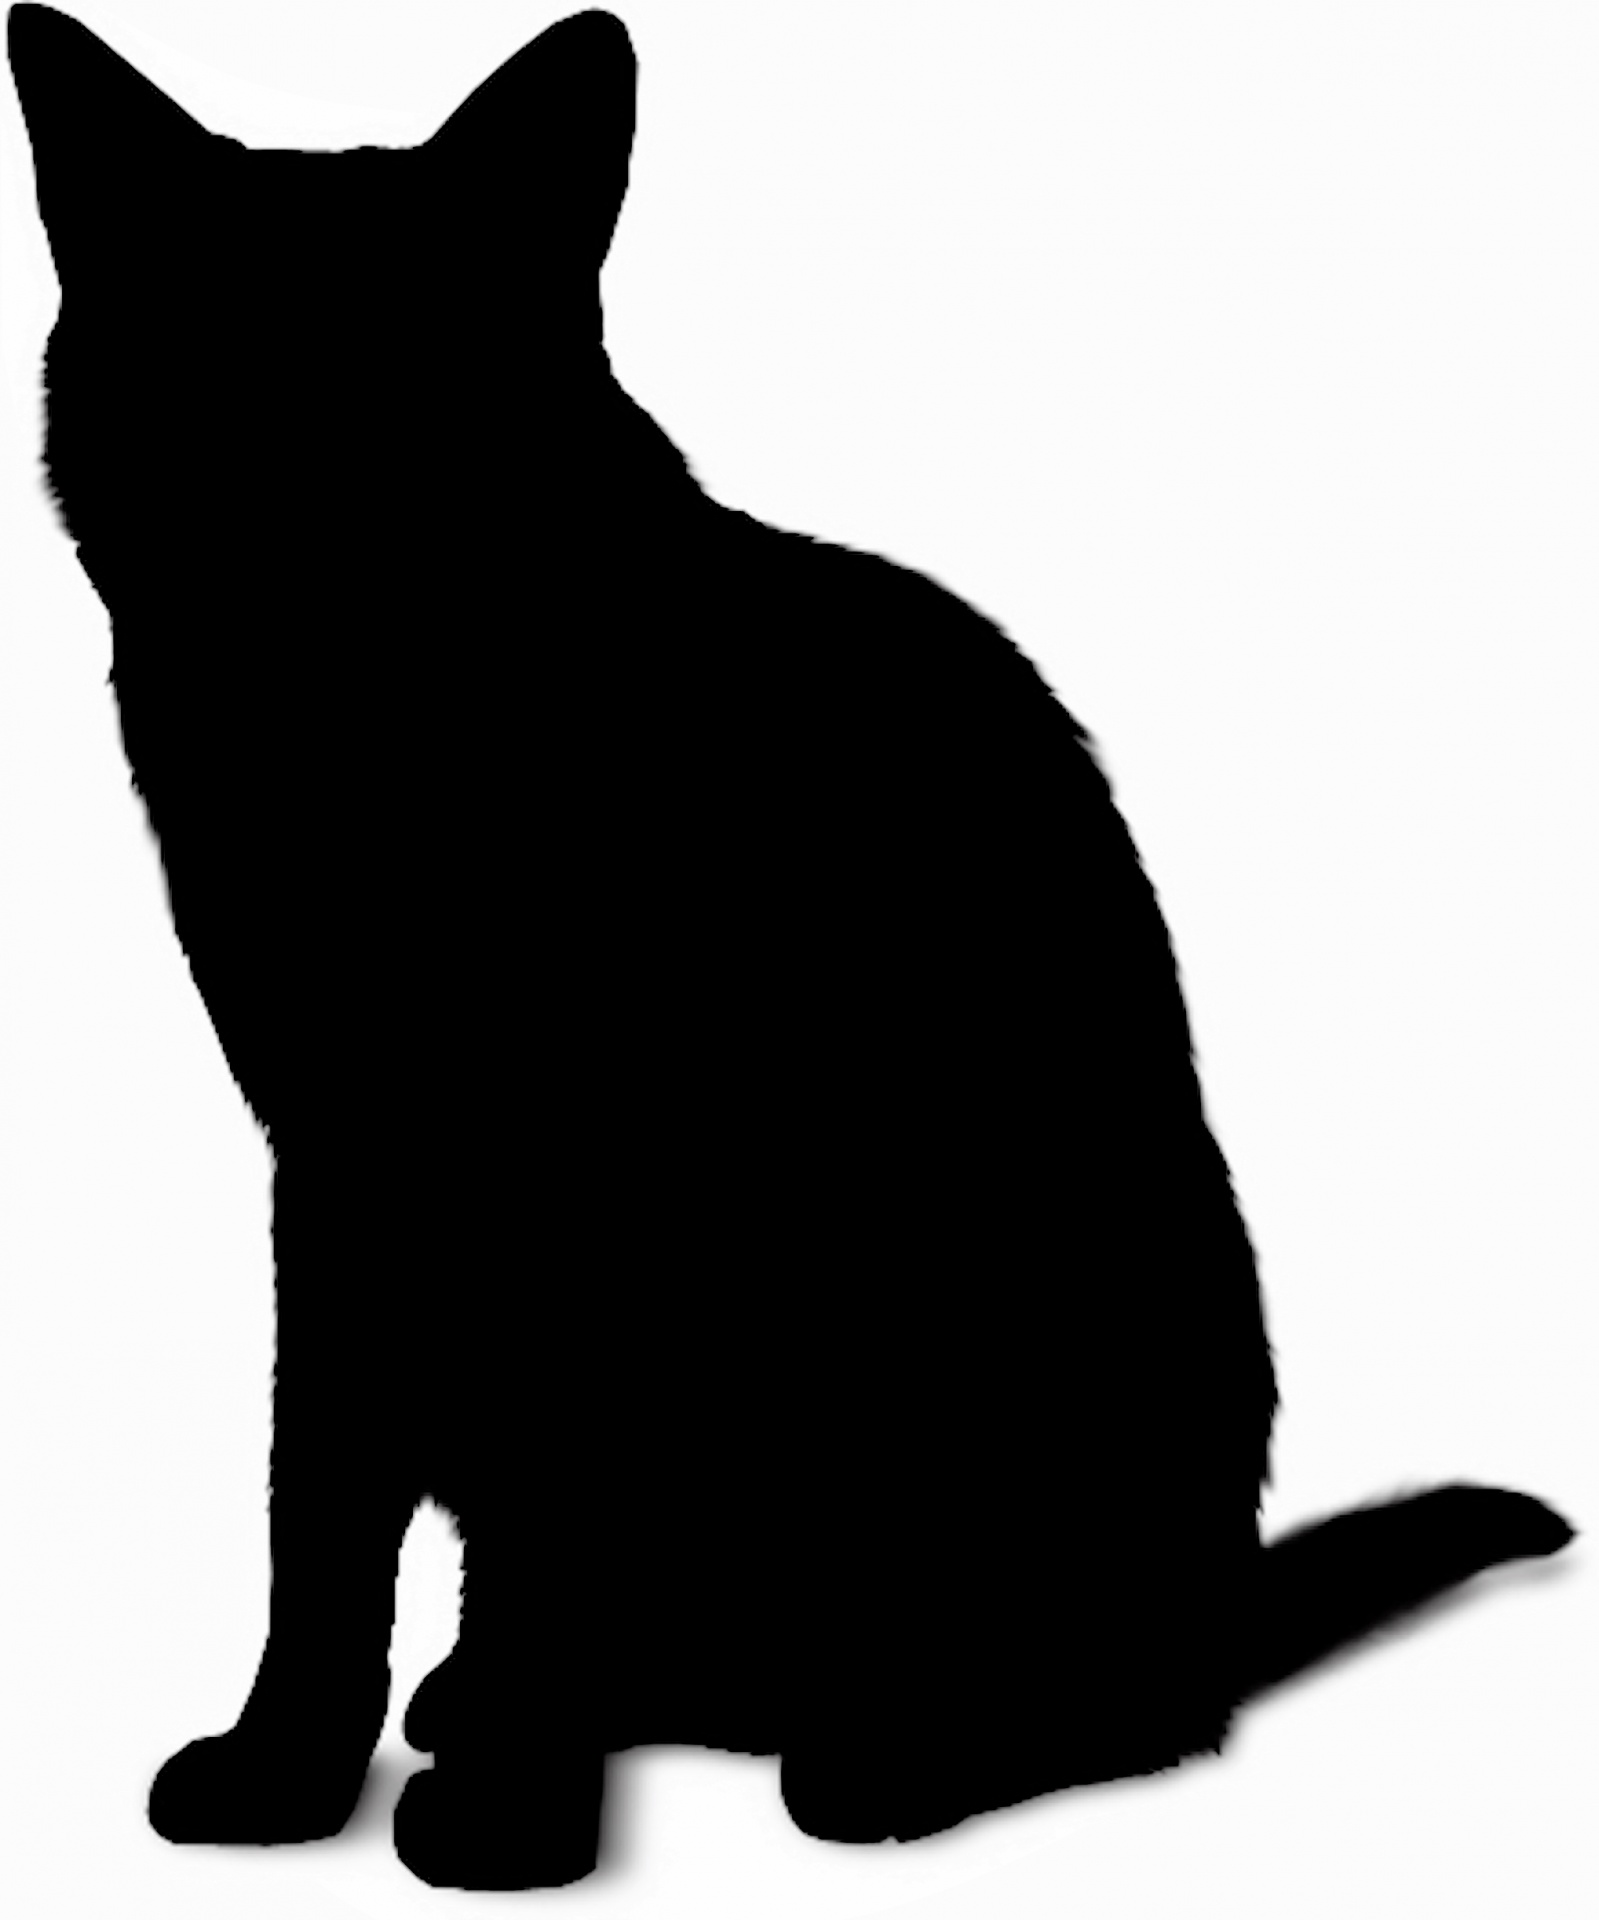 1599x1920 Silhouette Cat Free Stock Photo